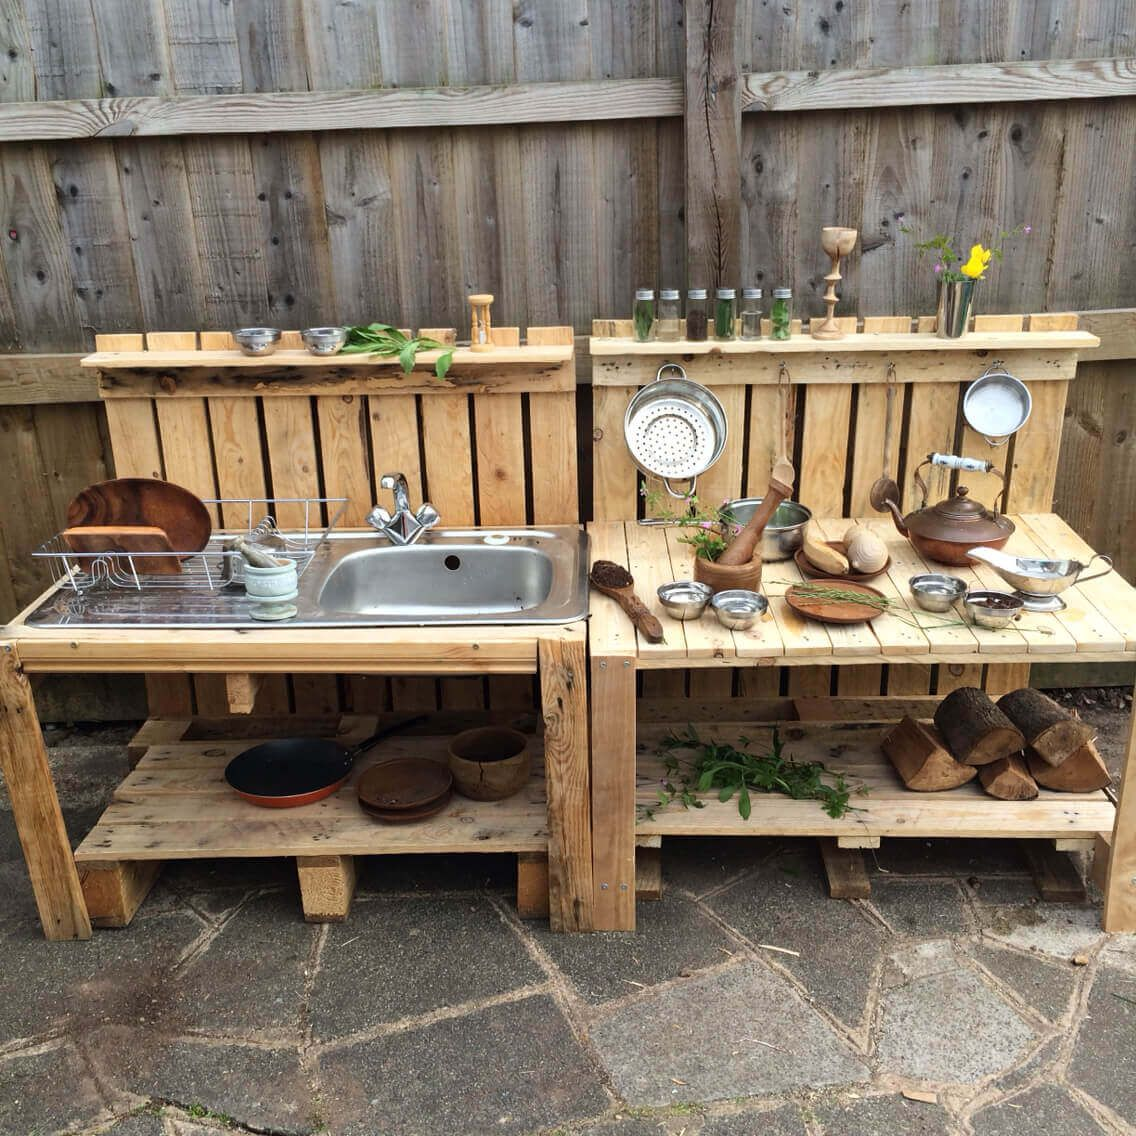 10 Outdoor Kitchen Sink Ideas 2020 The Inevitable Ones Outdoor Sinks Diy Mud Kitchen Mud Kitchen